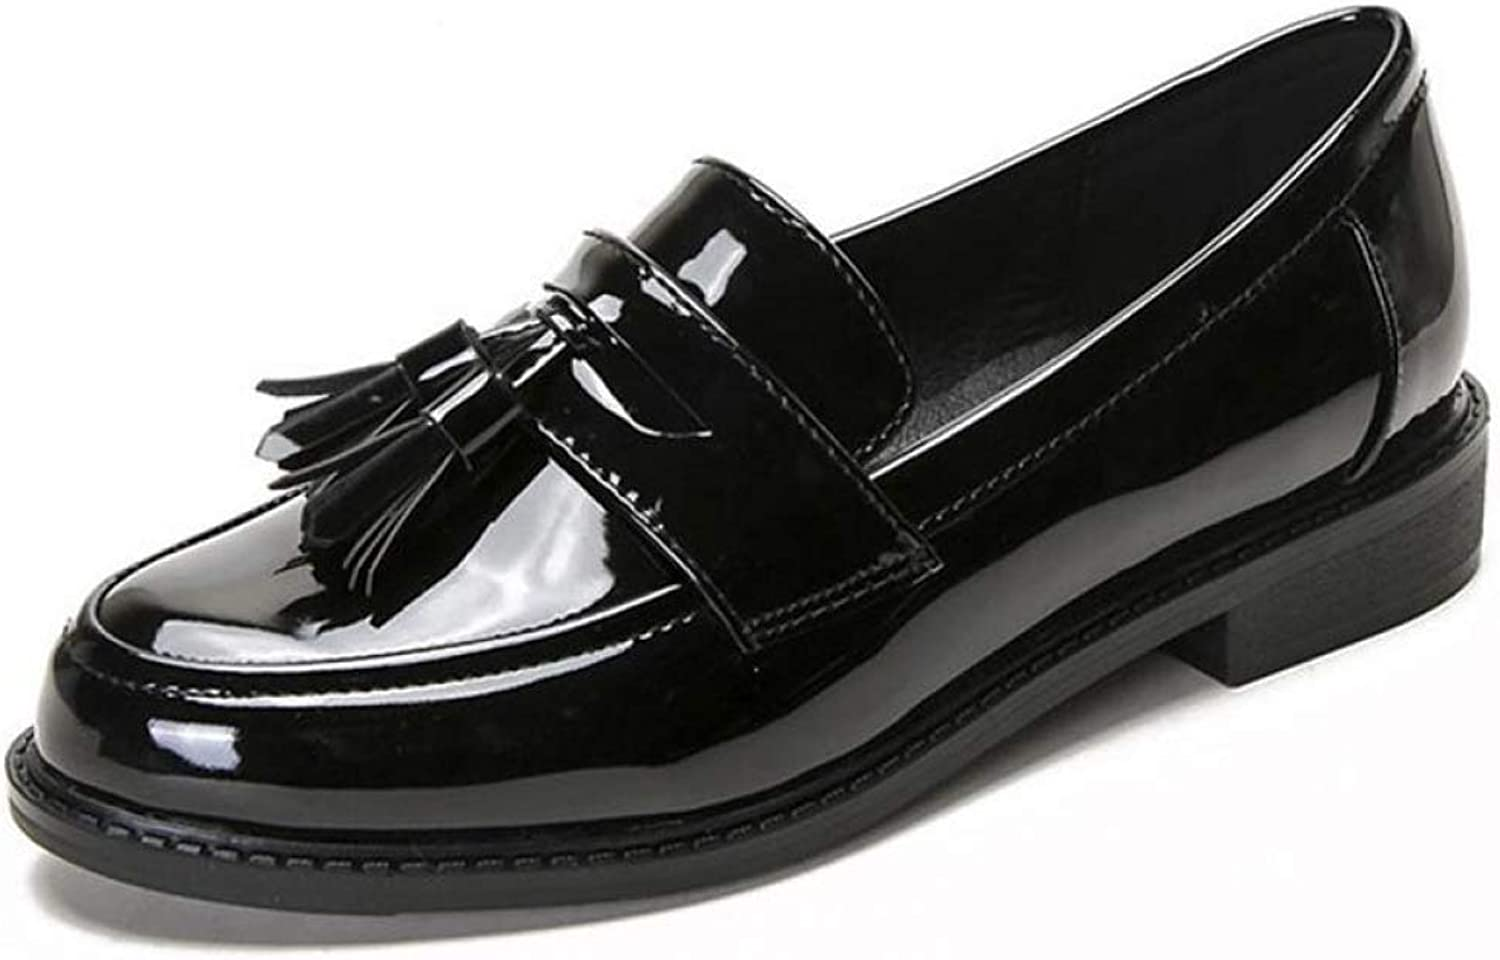 Women's Penny Loafers Casual Pointed Toe Ballet Flats Bow Tassel Patent Leather Slip On shoes